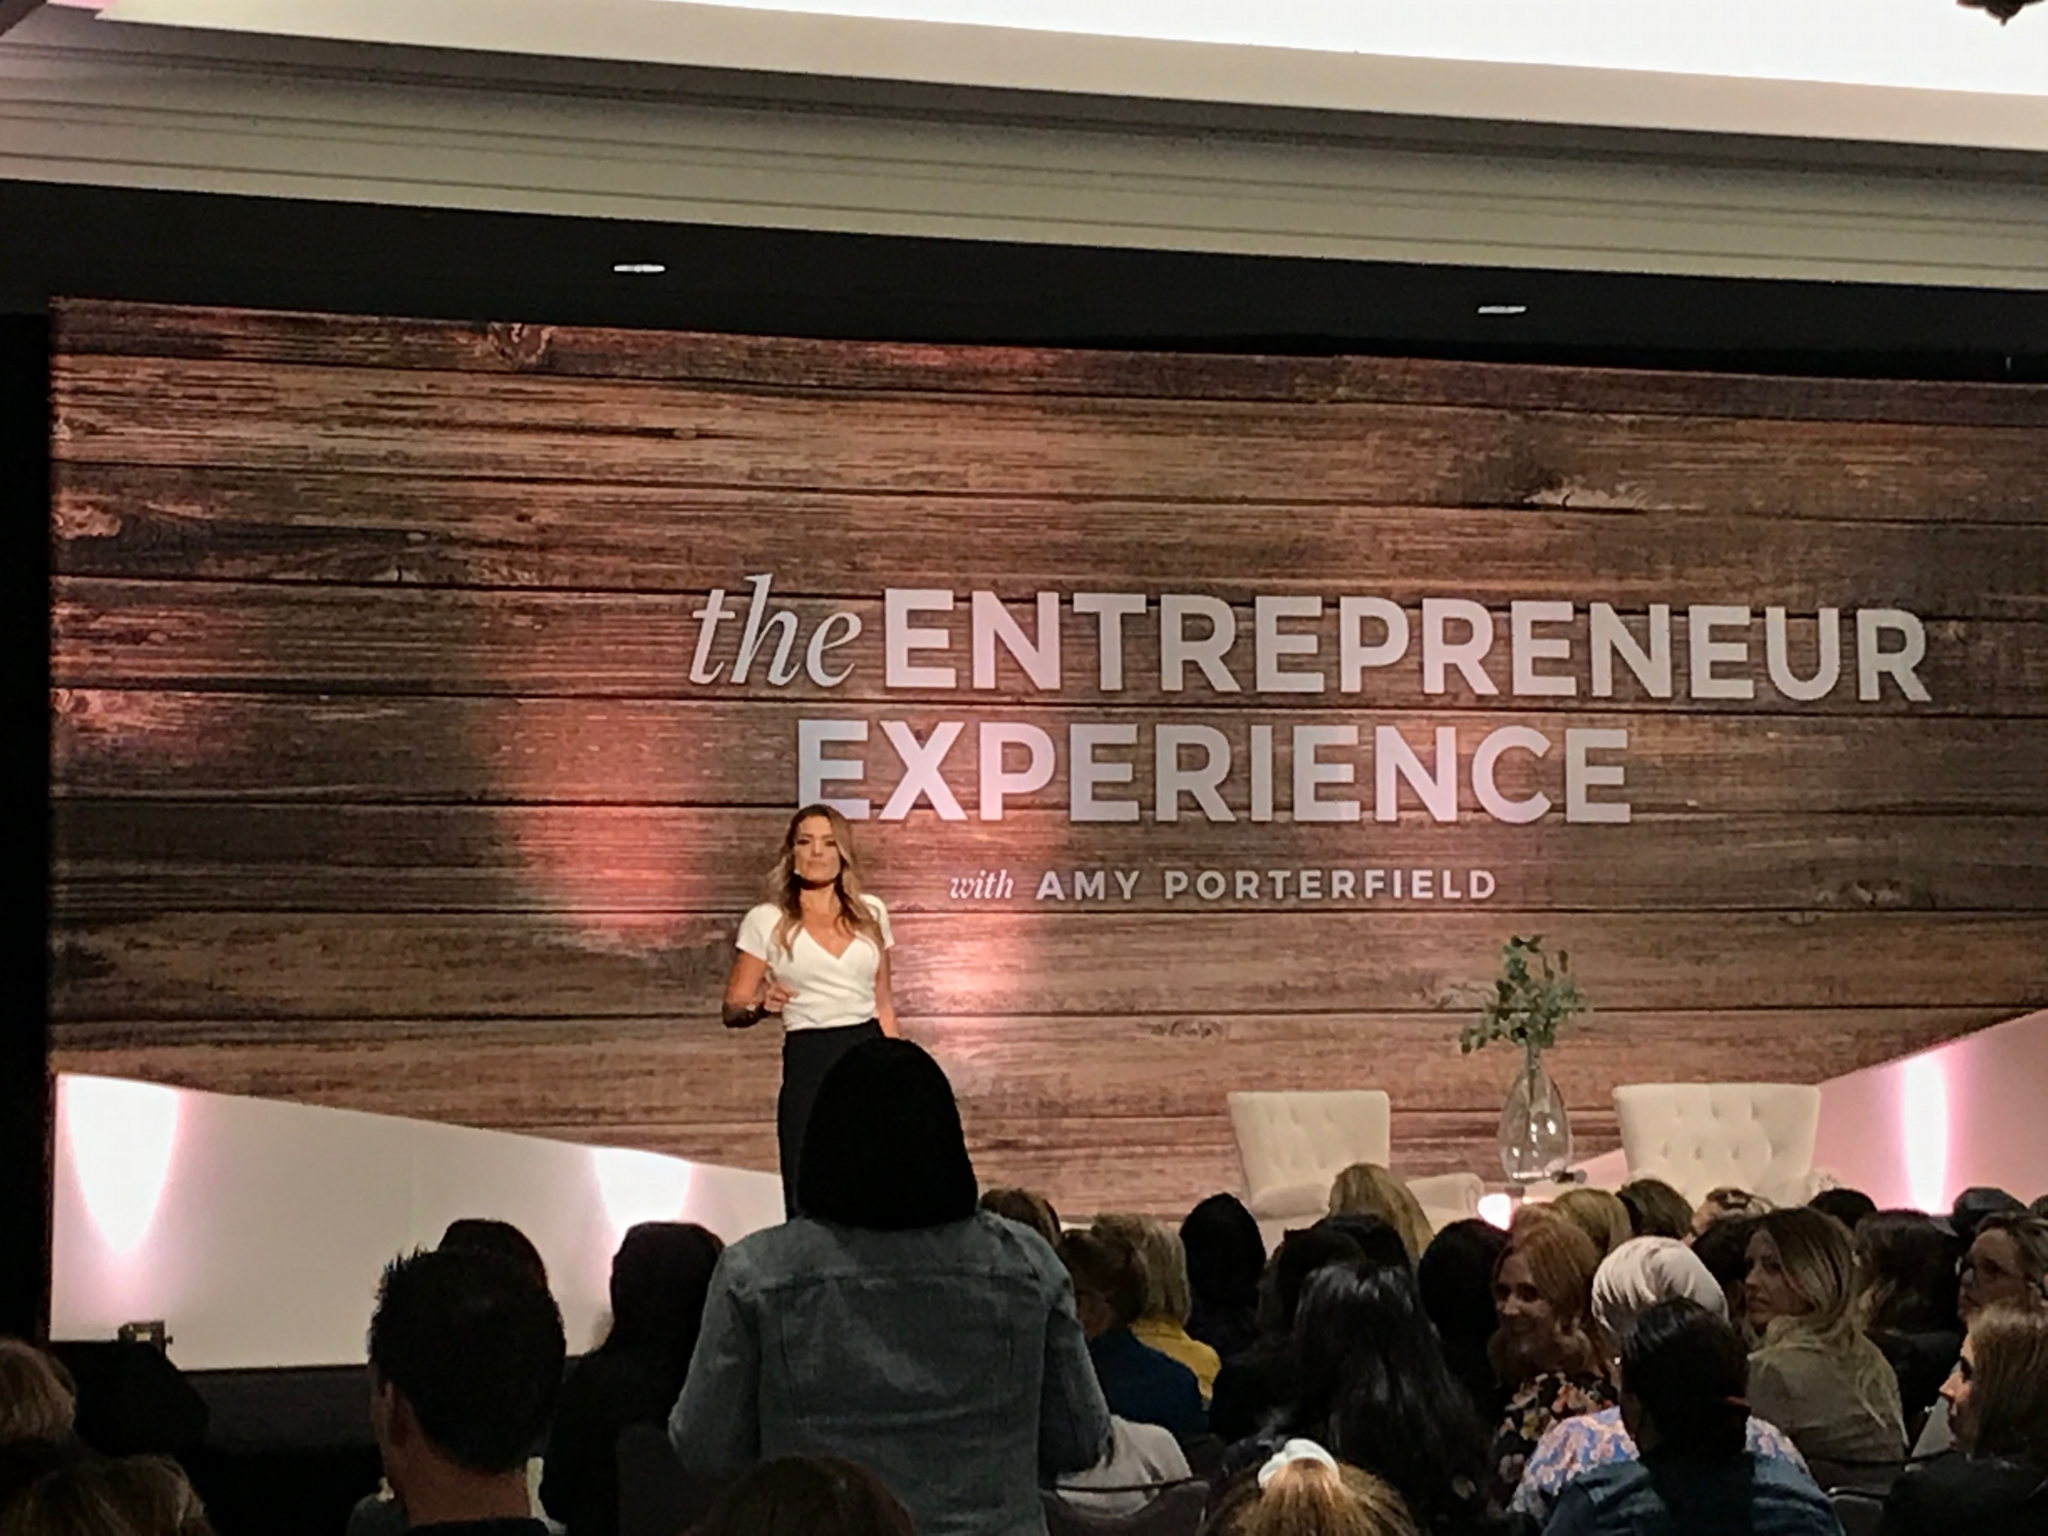 Jasmine Star at the Amy Porterfield Entrepreneur Experience